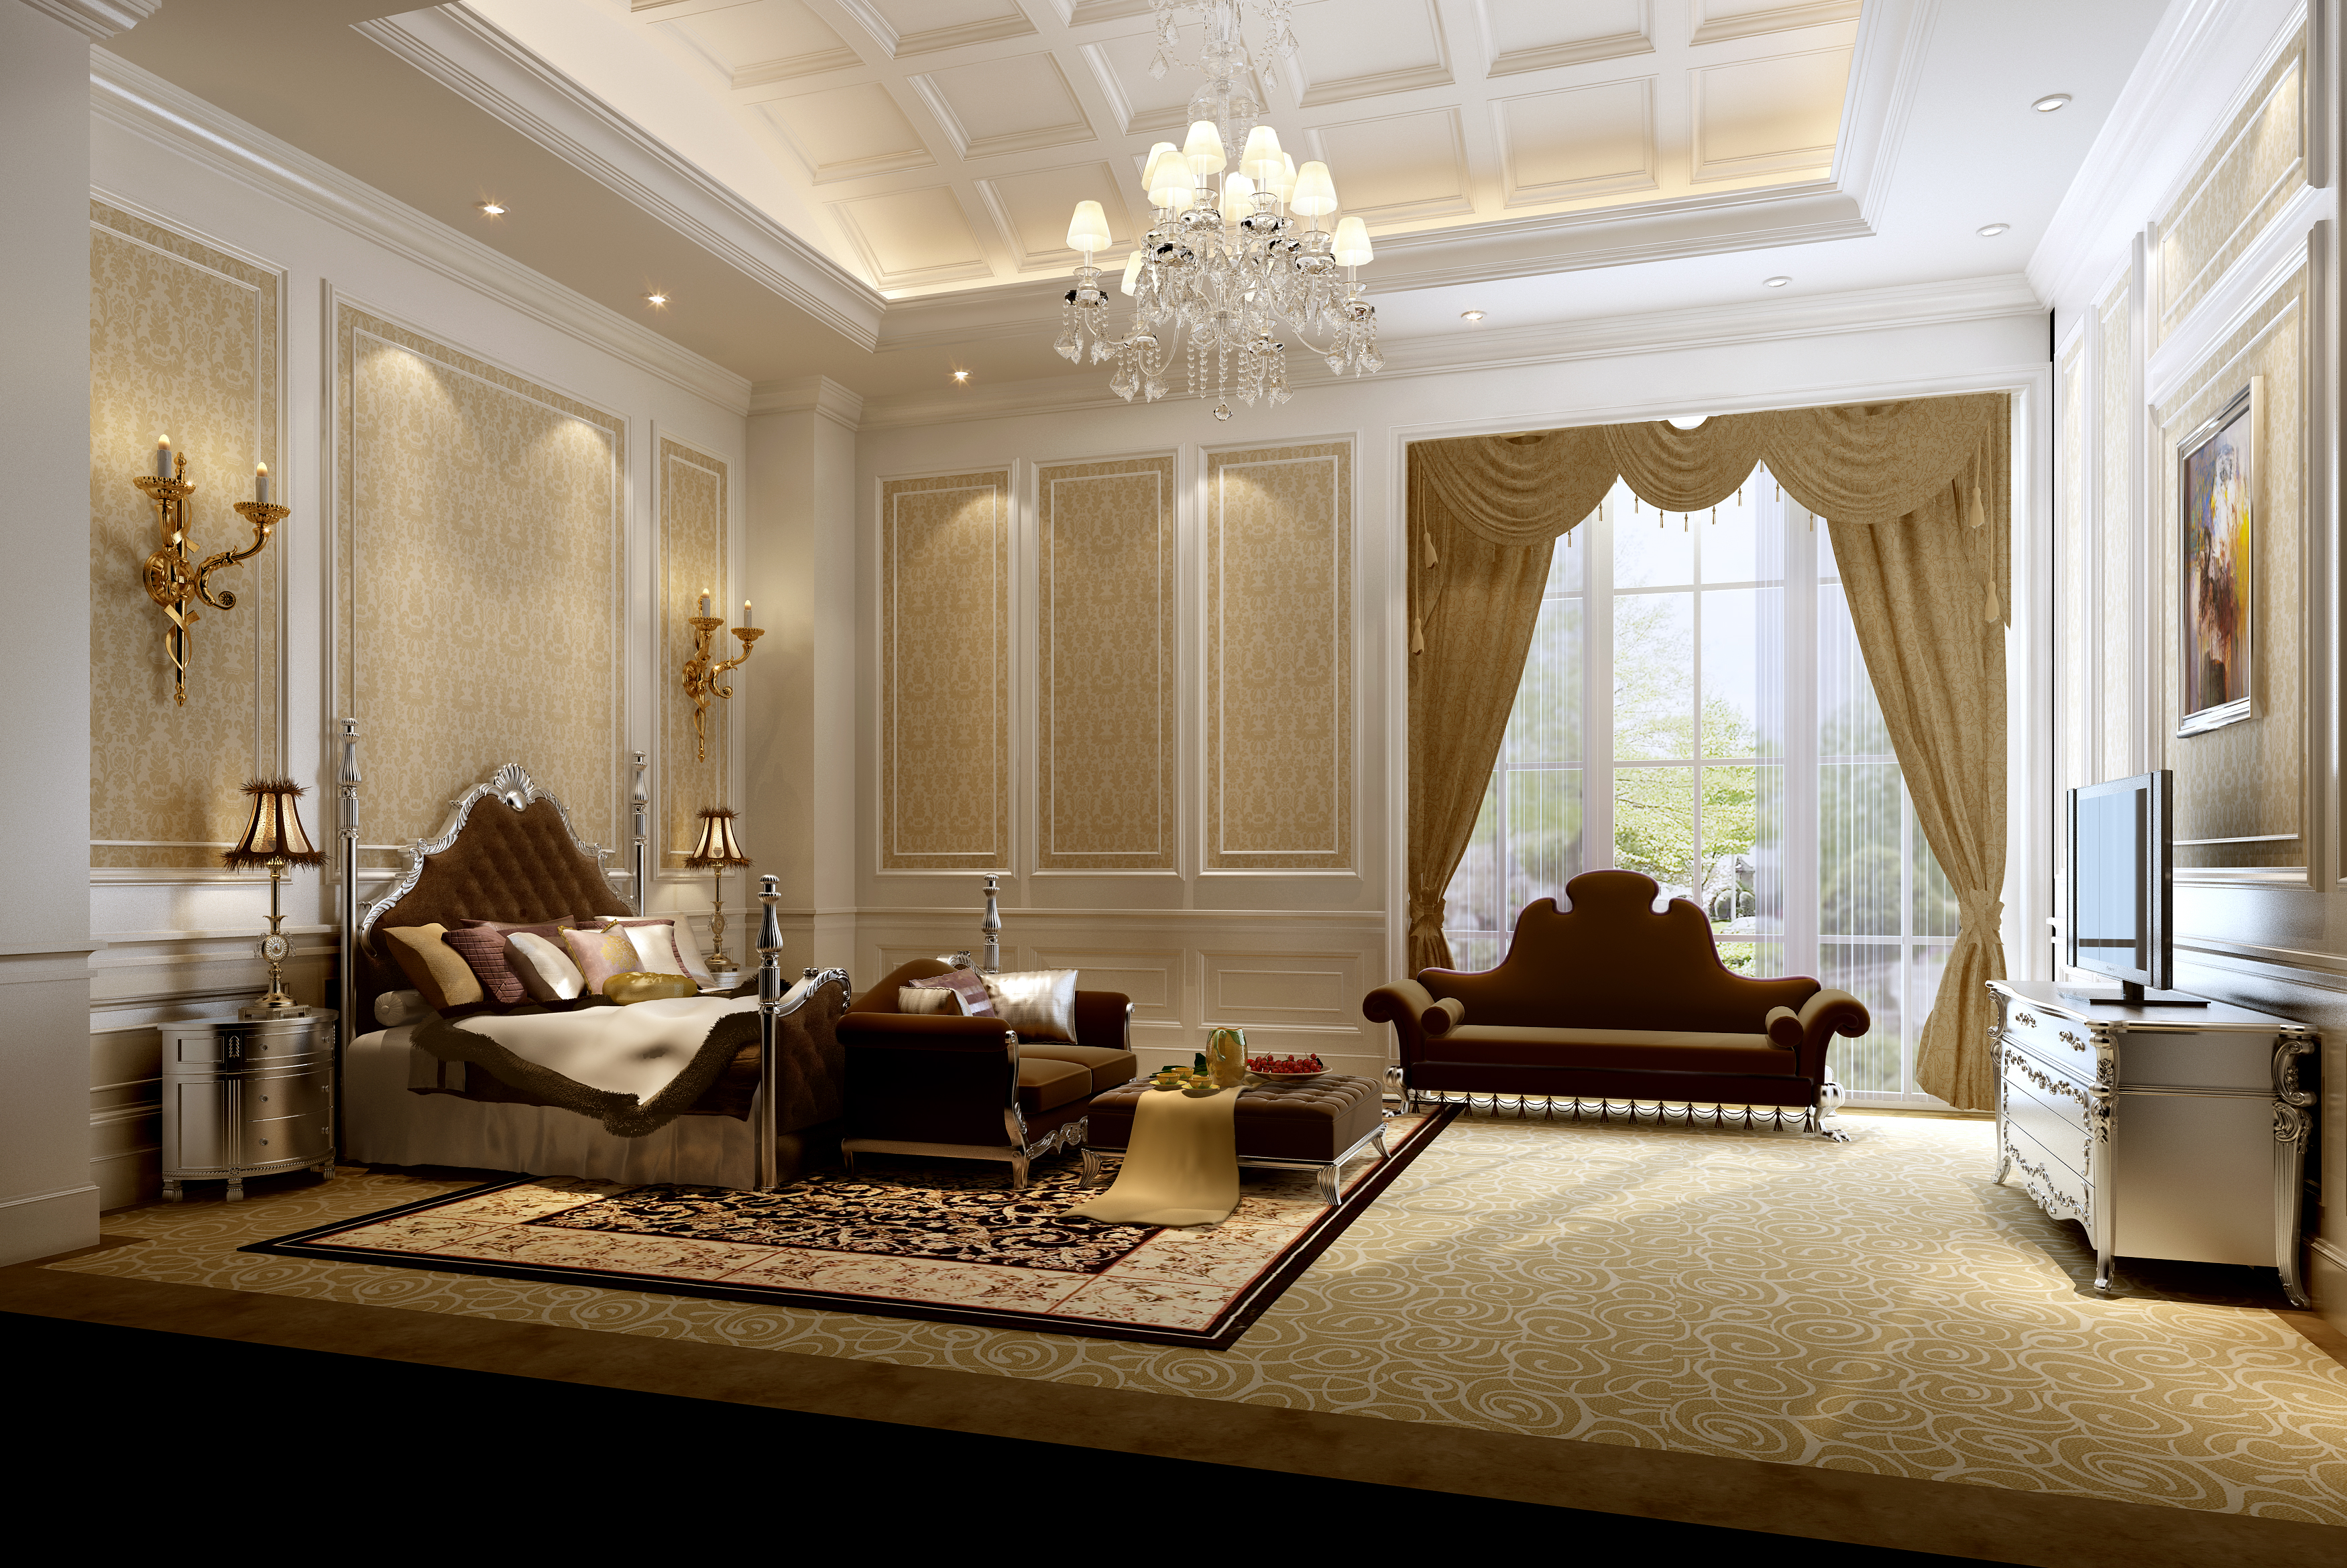 luxury bedrooms luxurious bedrooms pictures QGNOOUN